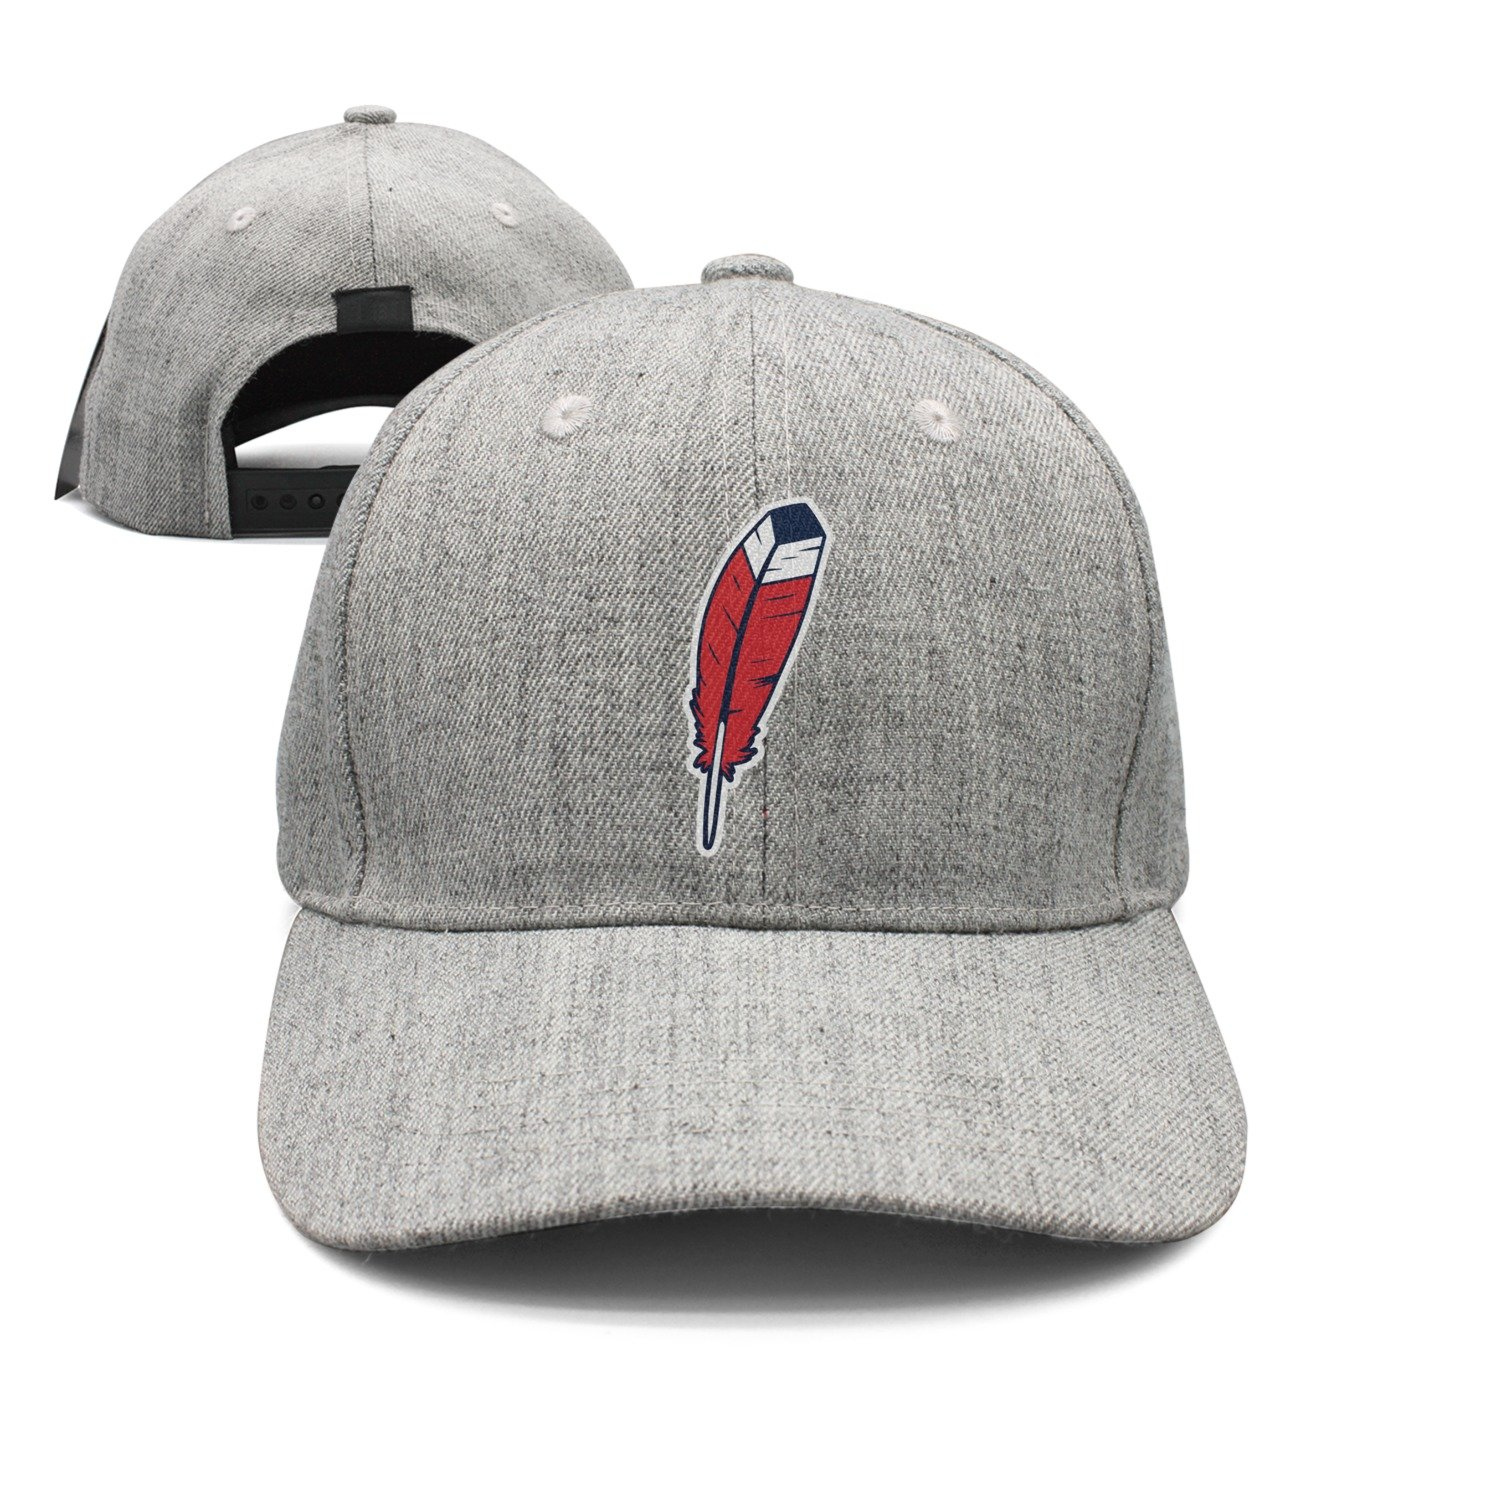 Cleveland Love Basketball Feather Indian Unisex Top Level Low Profile Athletic Baseball Fitted Caps Hat Men's Women's Wool Material Classic Grey